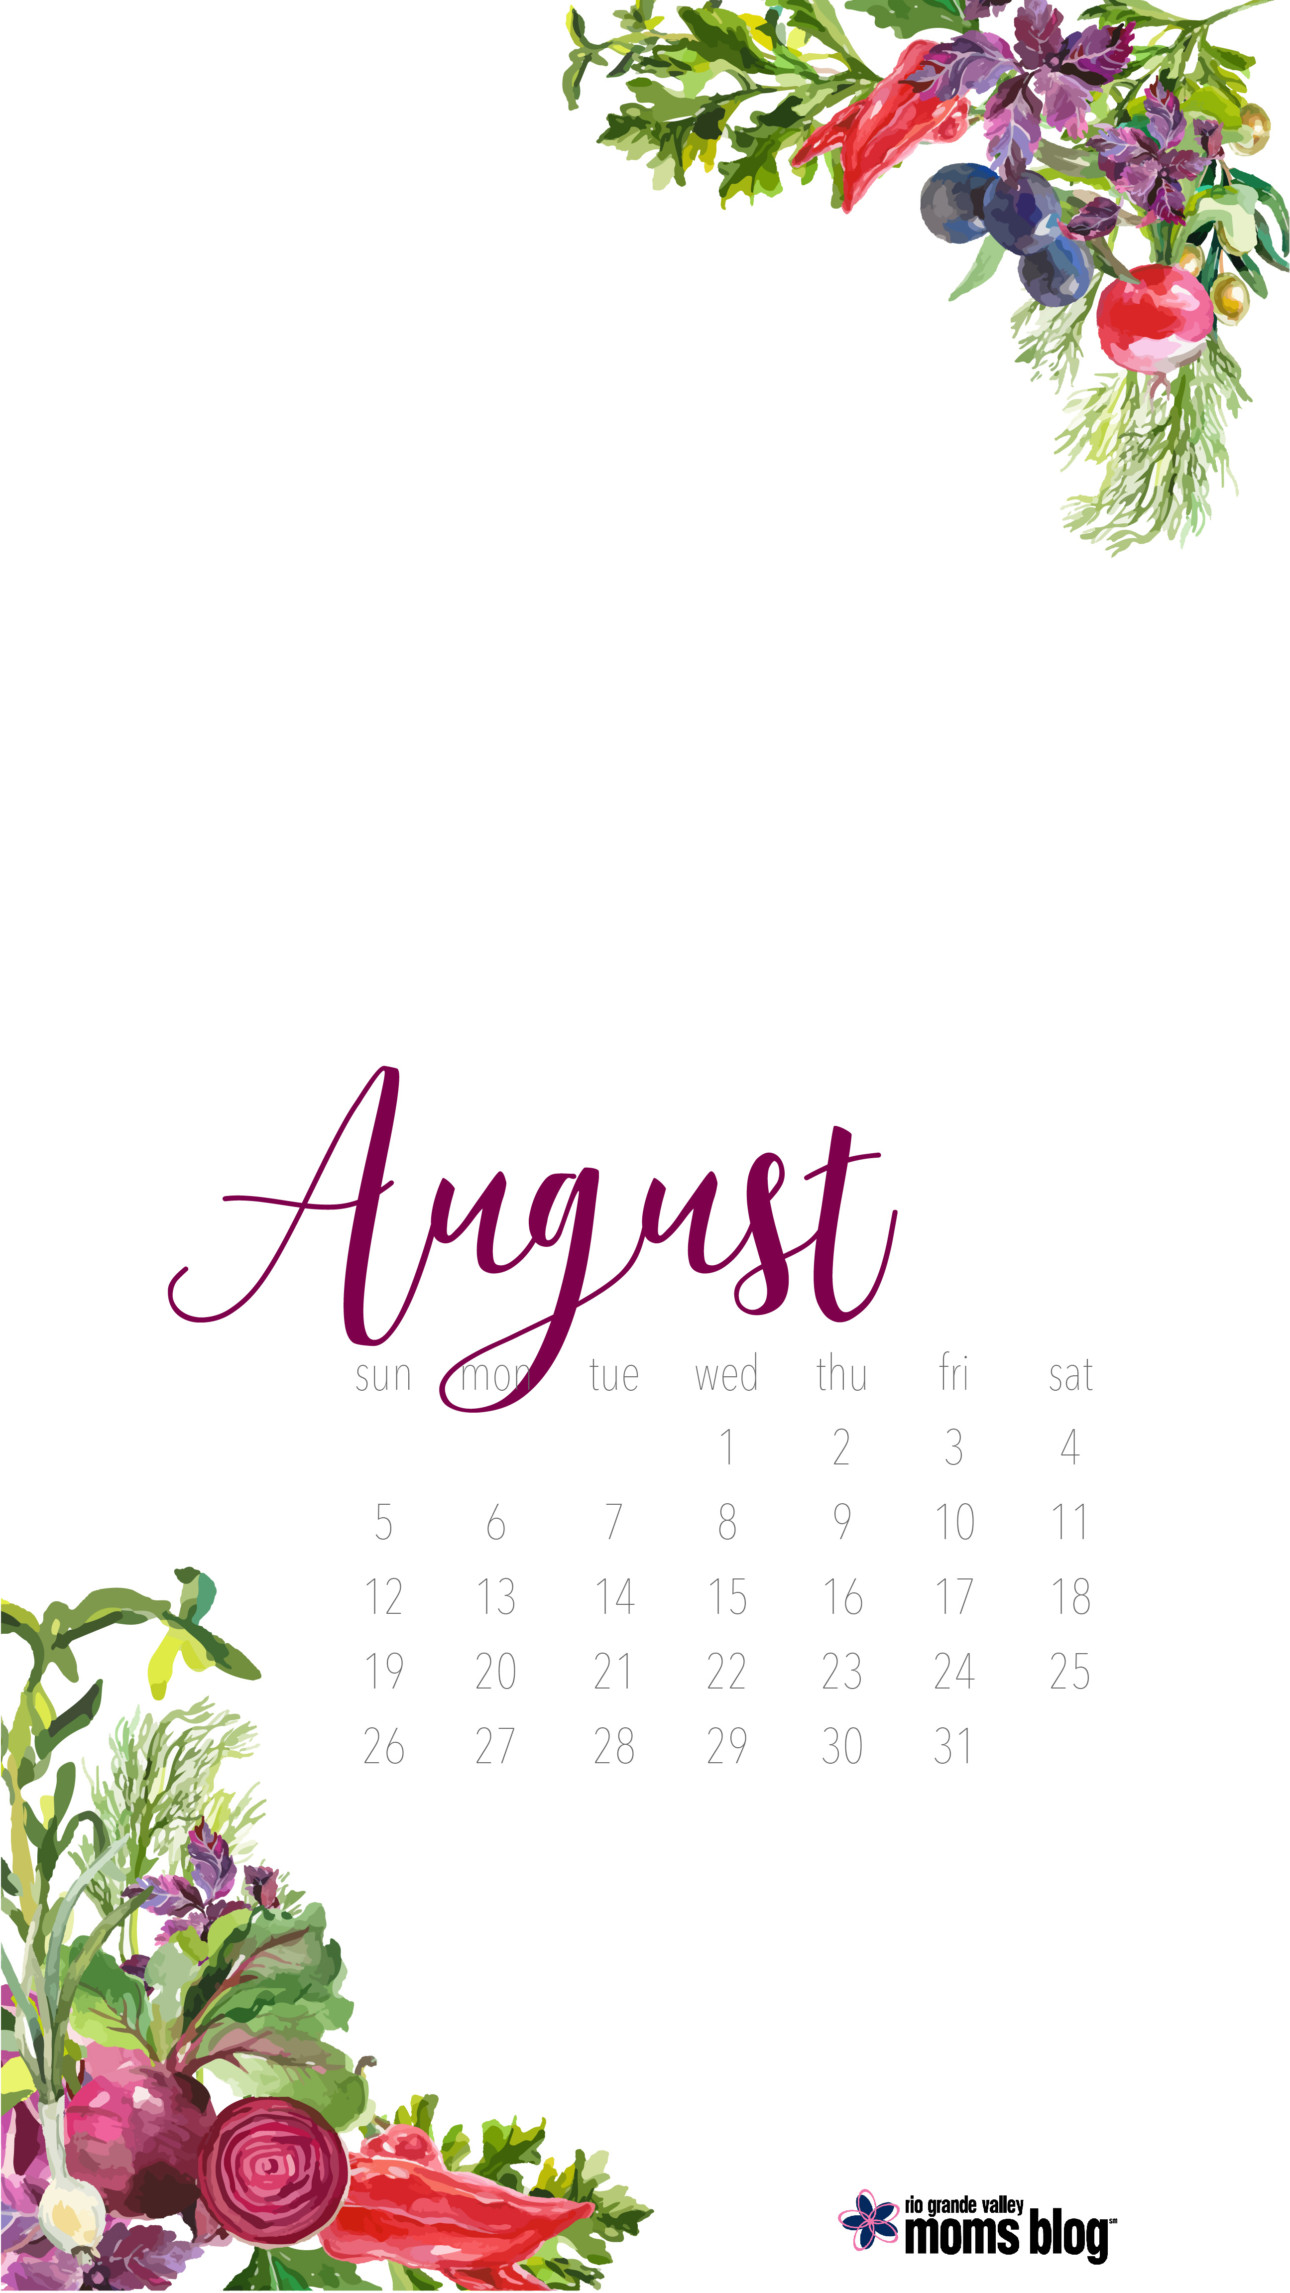 RGVMB August 2018 Cell Phone Wallpaper